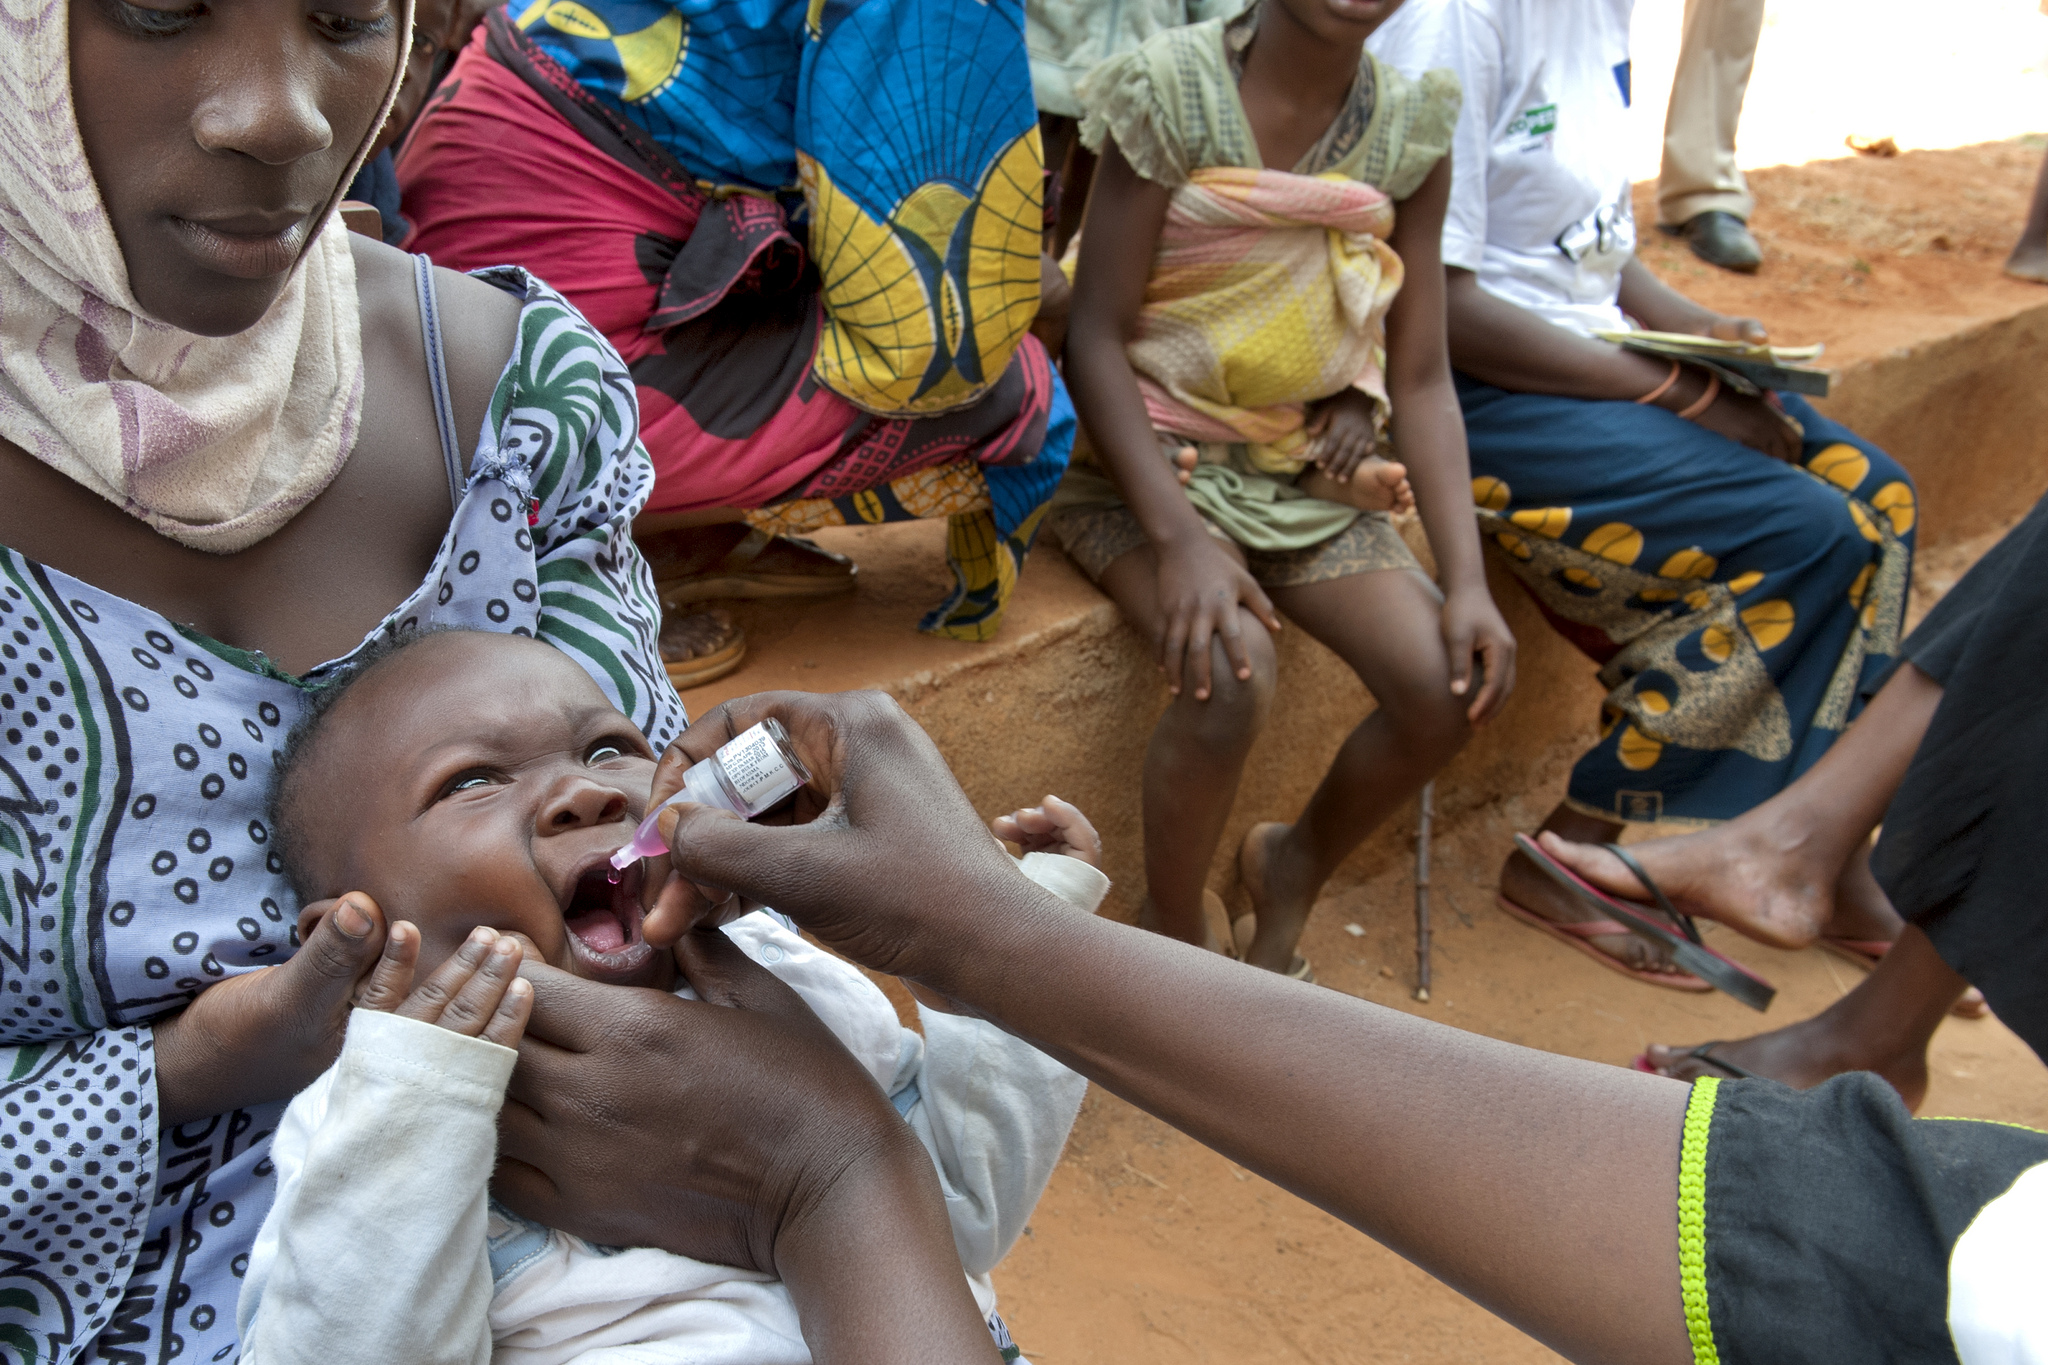 GAVI workers administer vaccines to children in Burundi. 2013 [Ken Opprann/Norad/Flickr]